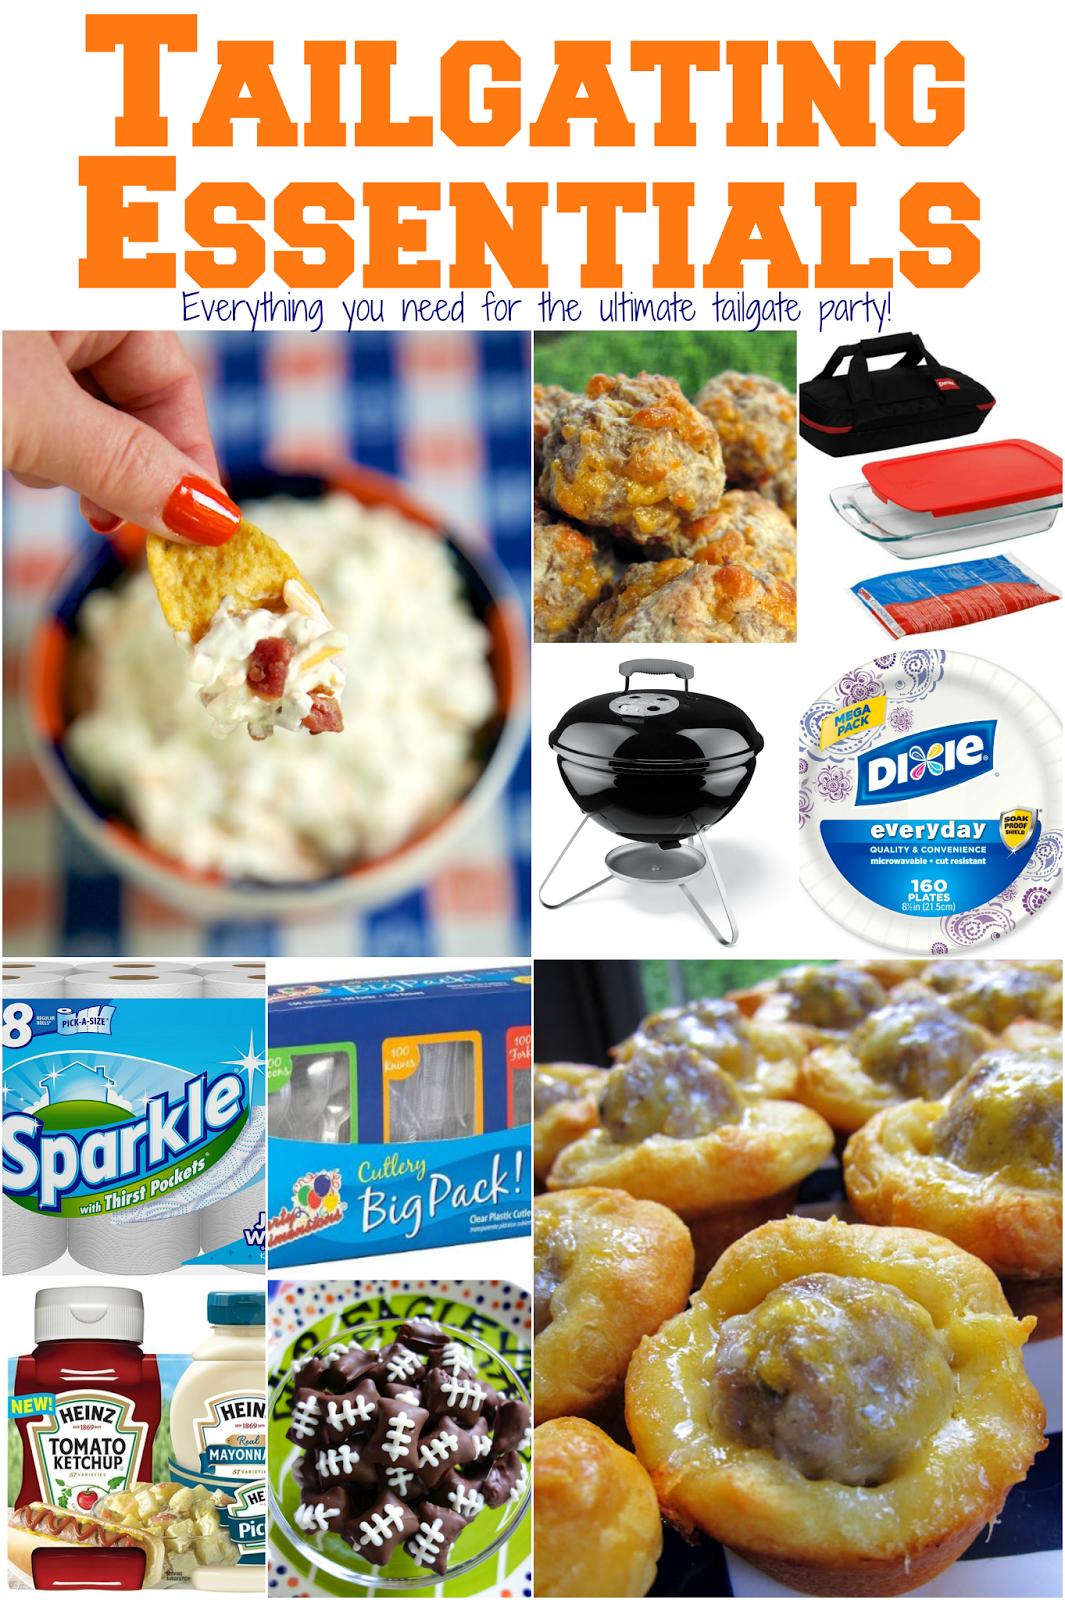 Tailgating Essentials - everything you need for the ULTIMATE tailgate party! What to bring to the parking lot and the BEST tailgate recipes on the internet!